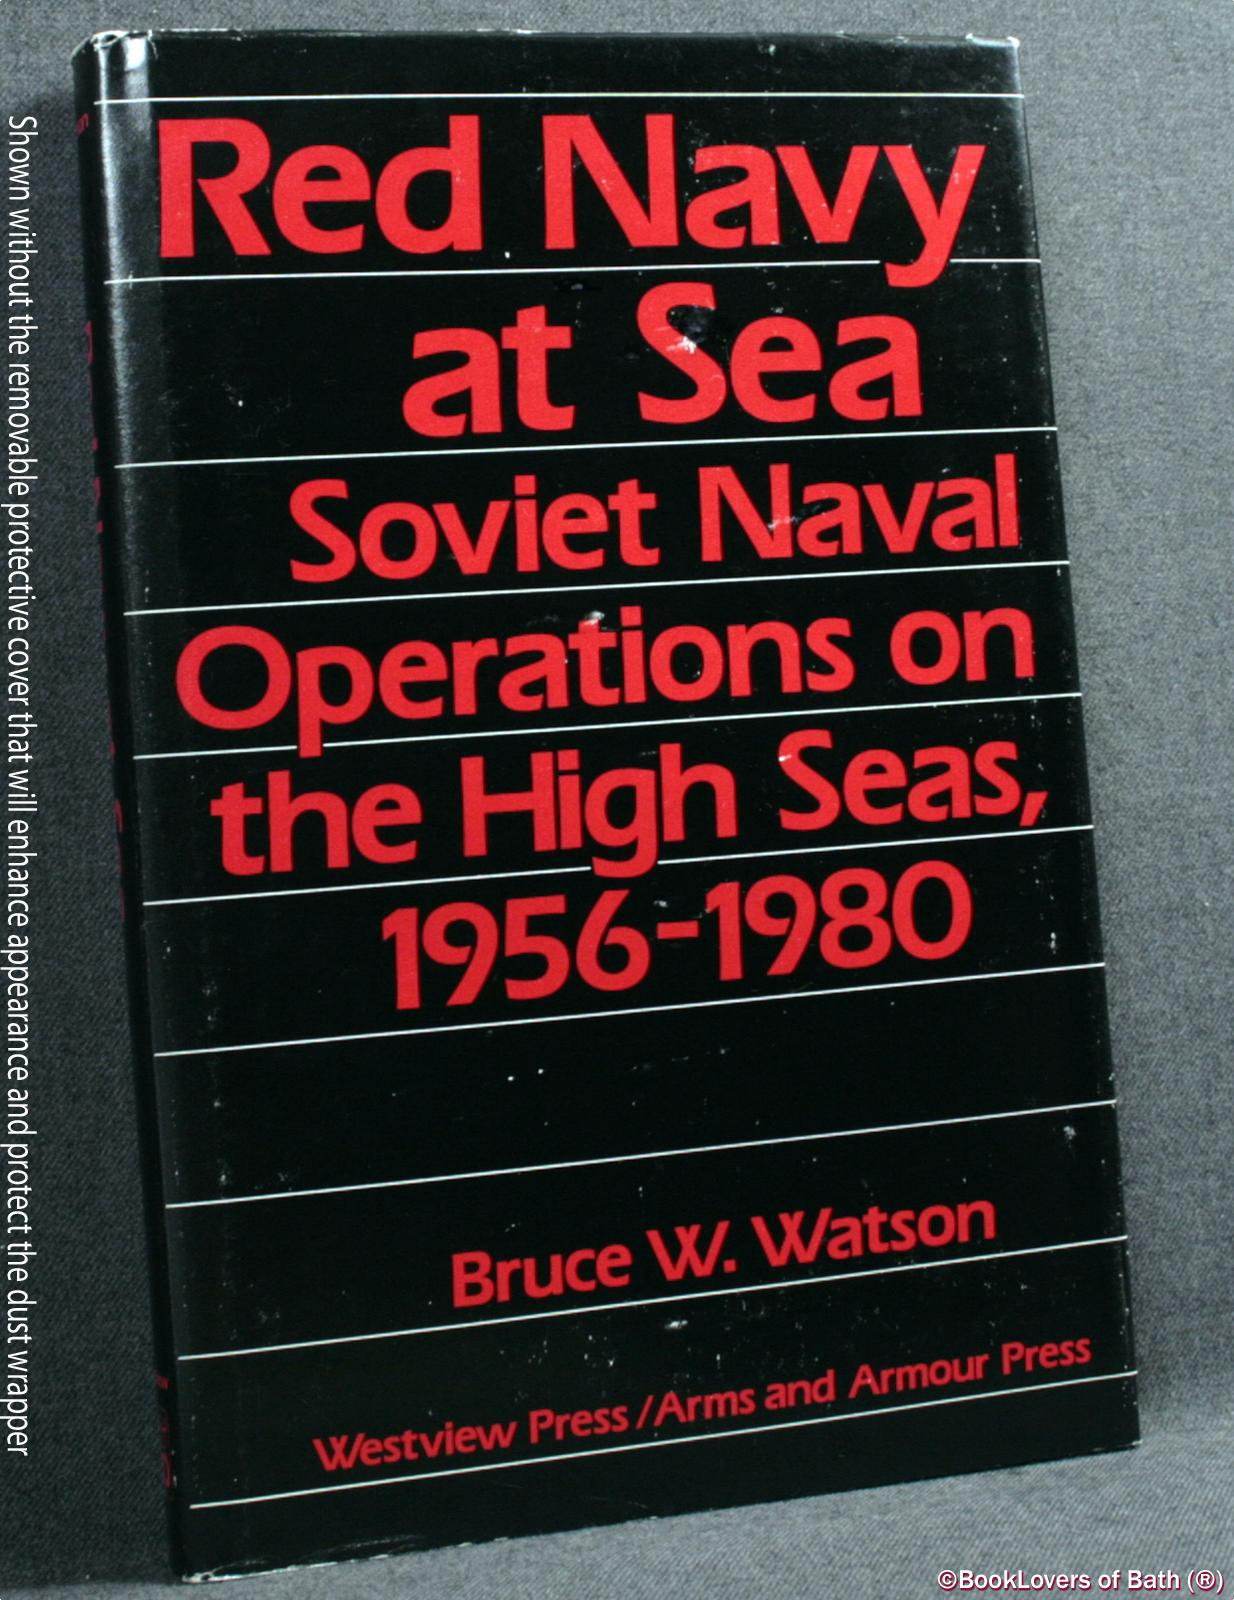 Red Navy At Sea: Soviet Naval Operations On the High Seas, 1956-1980 - Bruce W. Watson